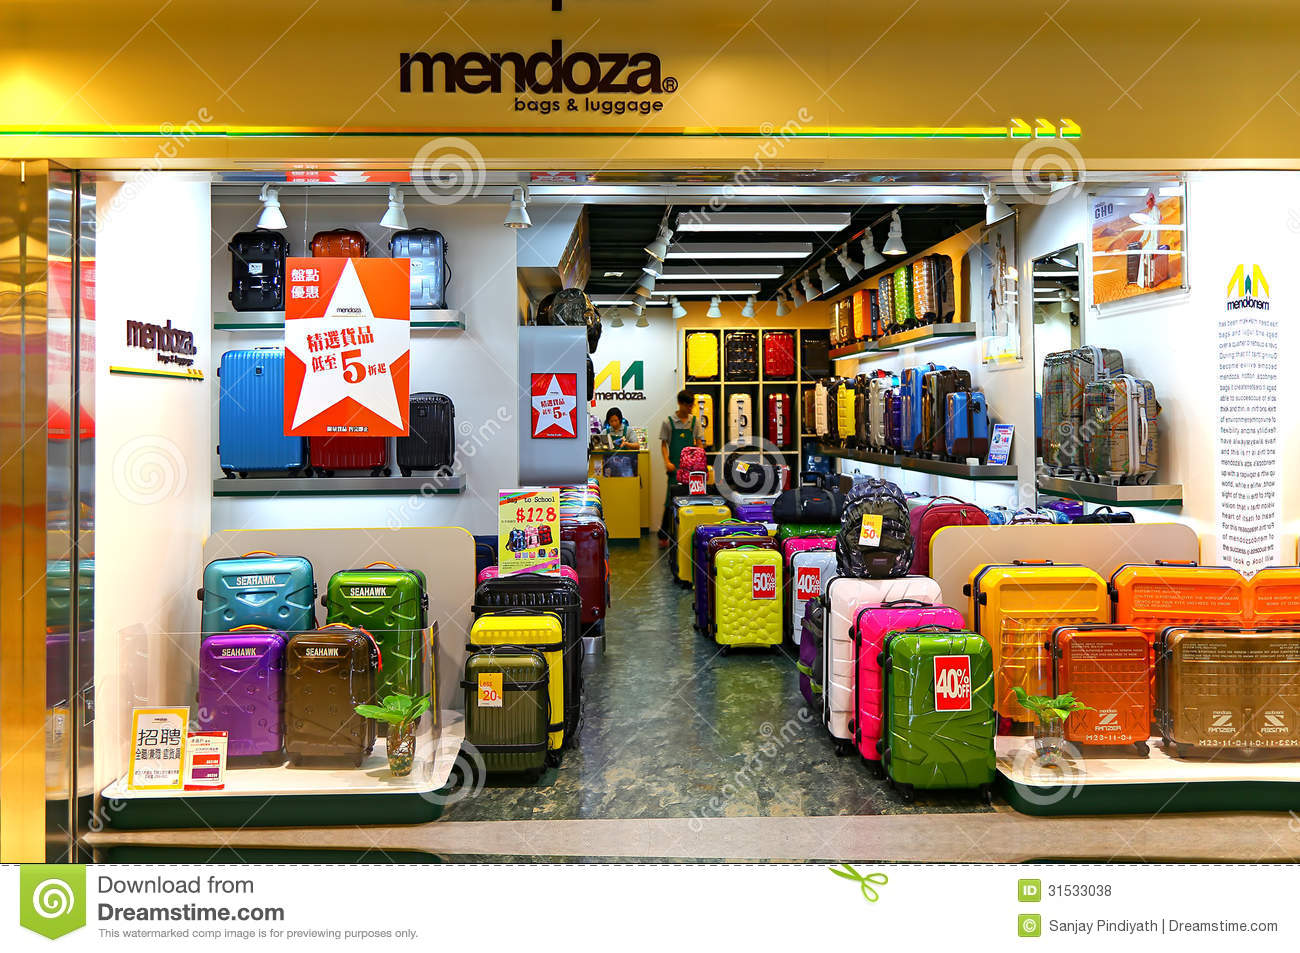 Mendoza luggage store by Pindiyath100, via Dreamstime | Retail ...